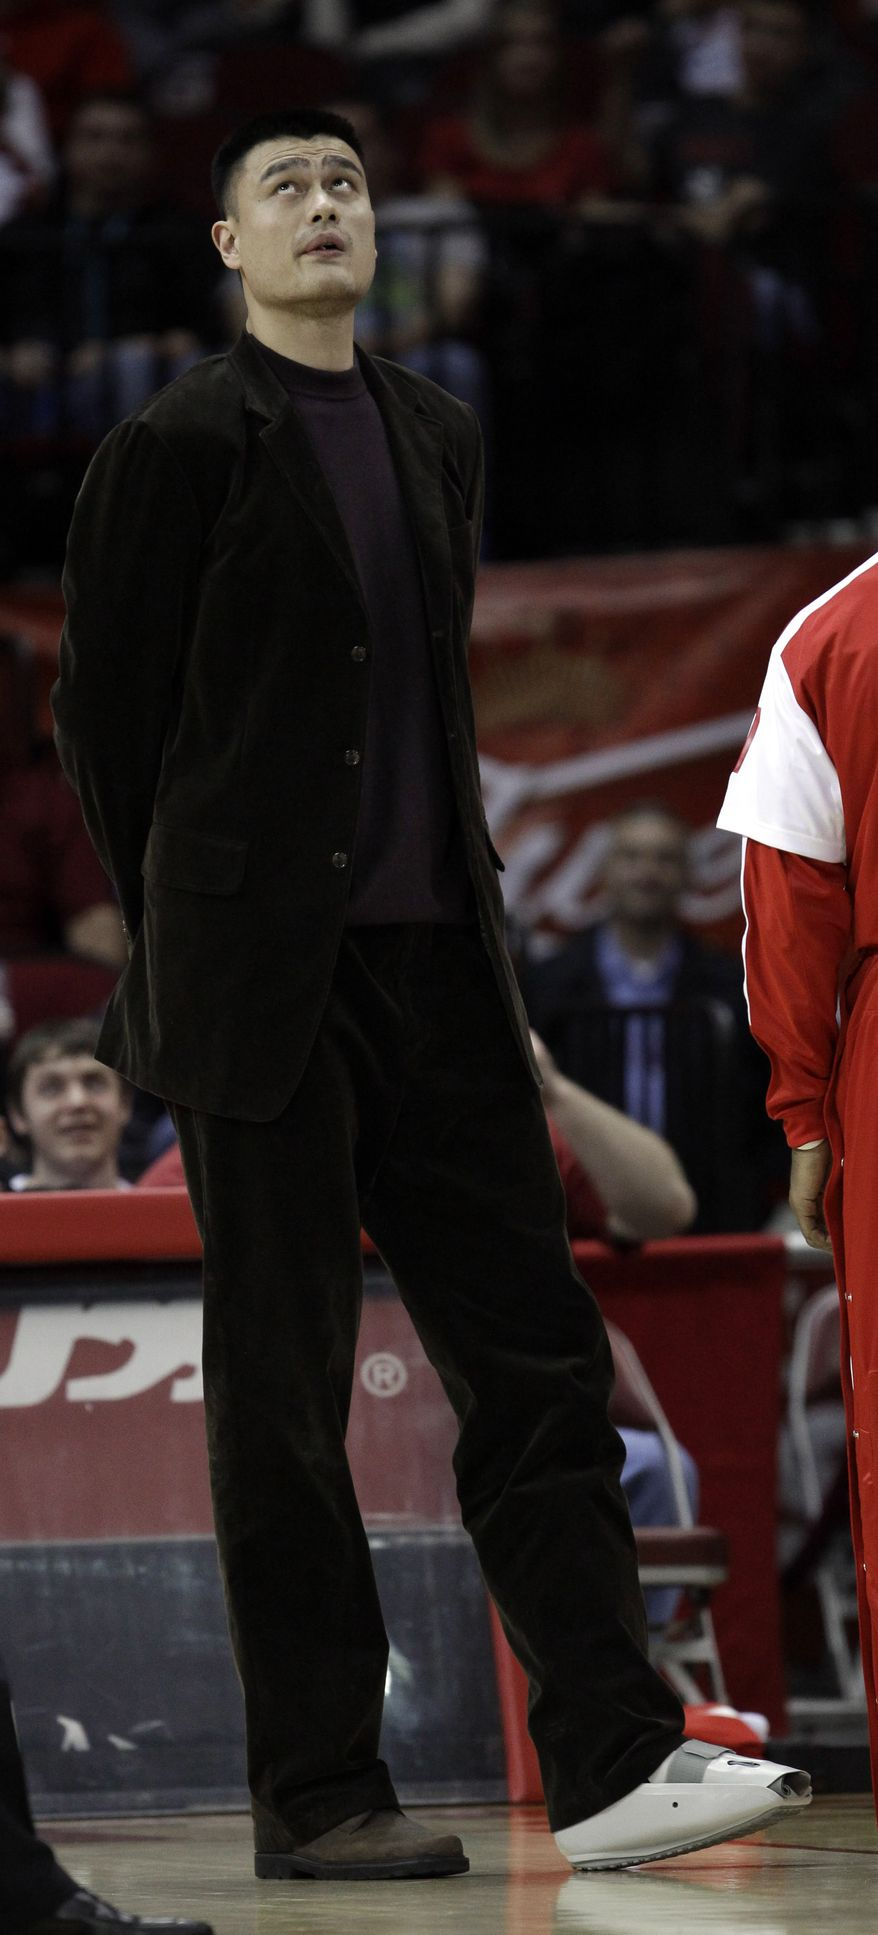 Houston Rockets center Yao Ming wears a protective boot on his left foot as he looks up at the scoreboard during the Rockets' 100-93 home win against the Washington Wizards on Dec. 27. Yao is out with a stress fracture in his left ankle. (Associated Press)